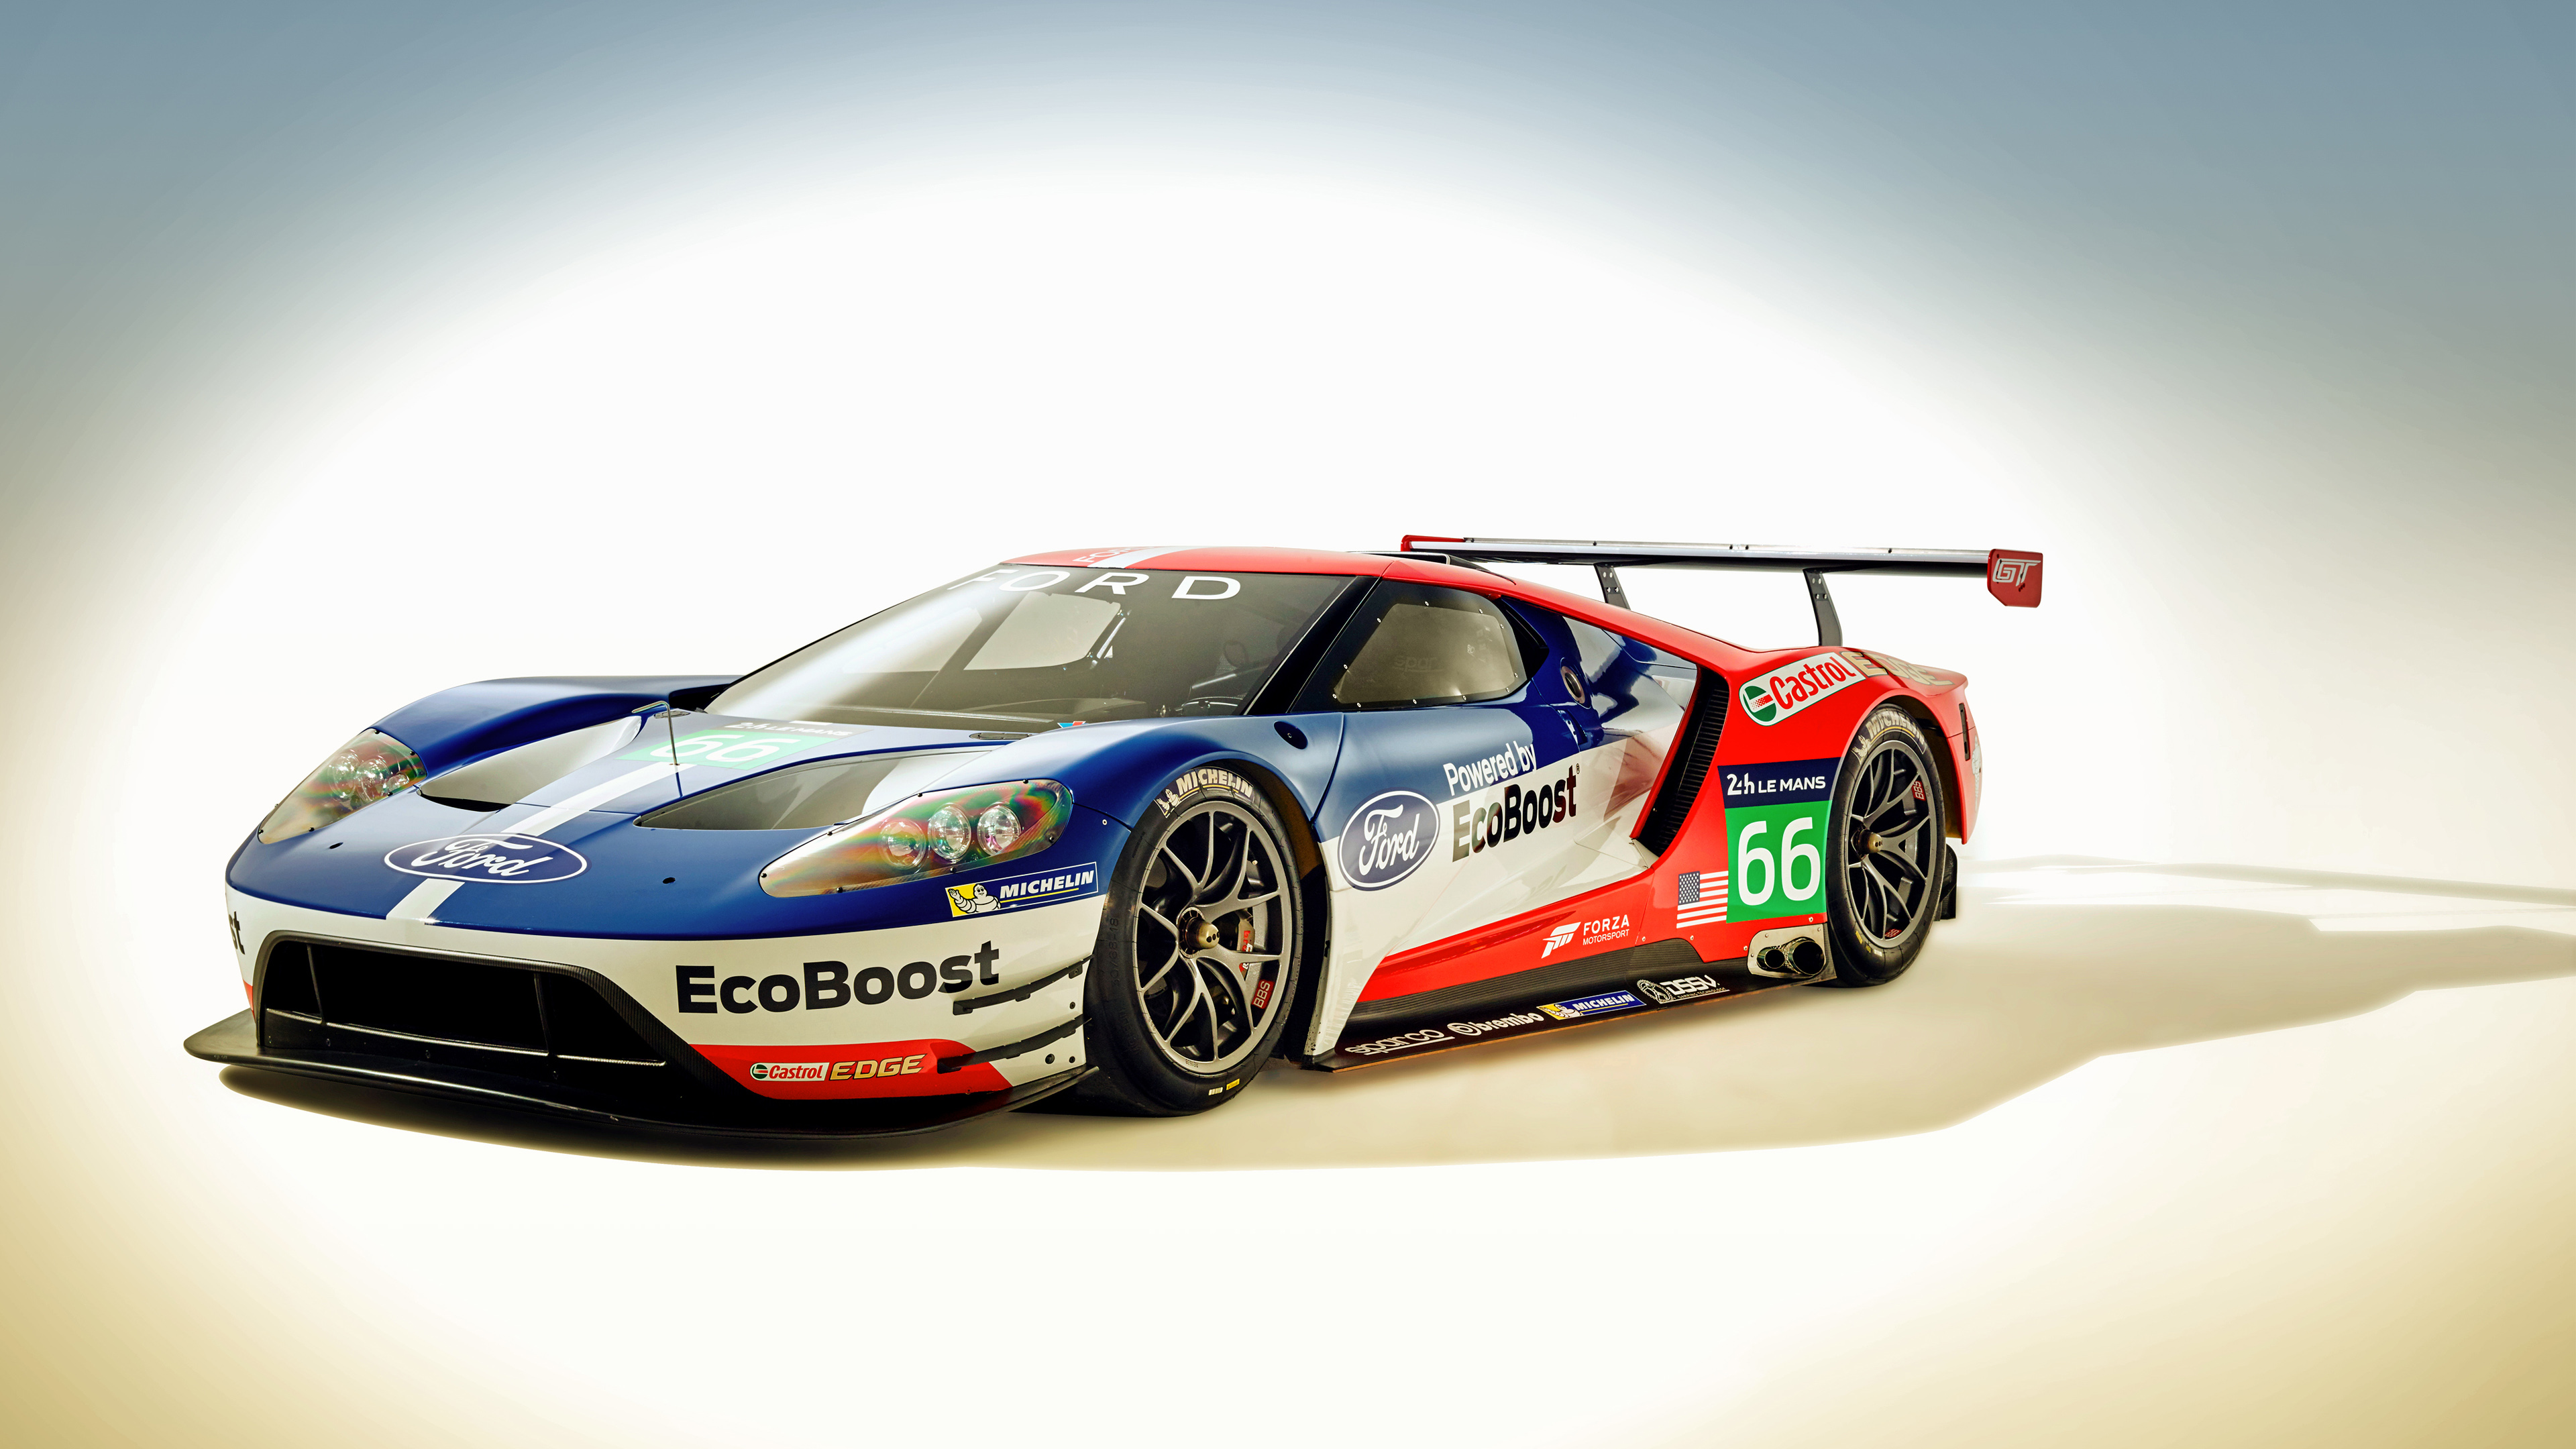 Ford Gt Race Car 2016 Wallpaper Hd Car Wallpapers Id 5625